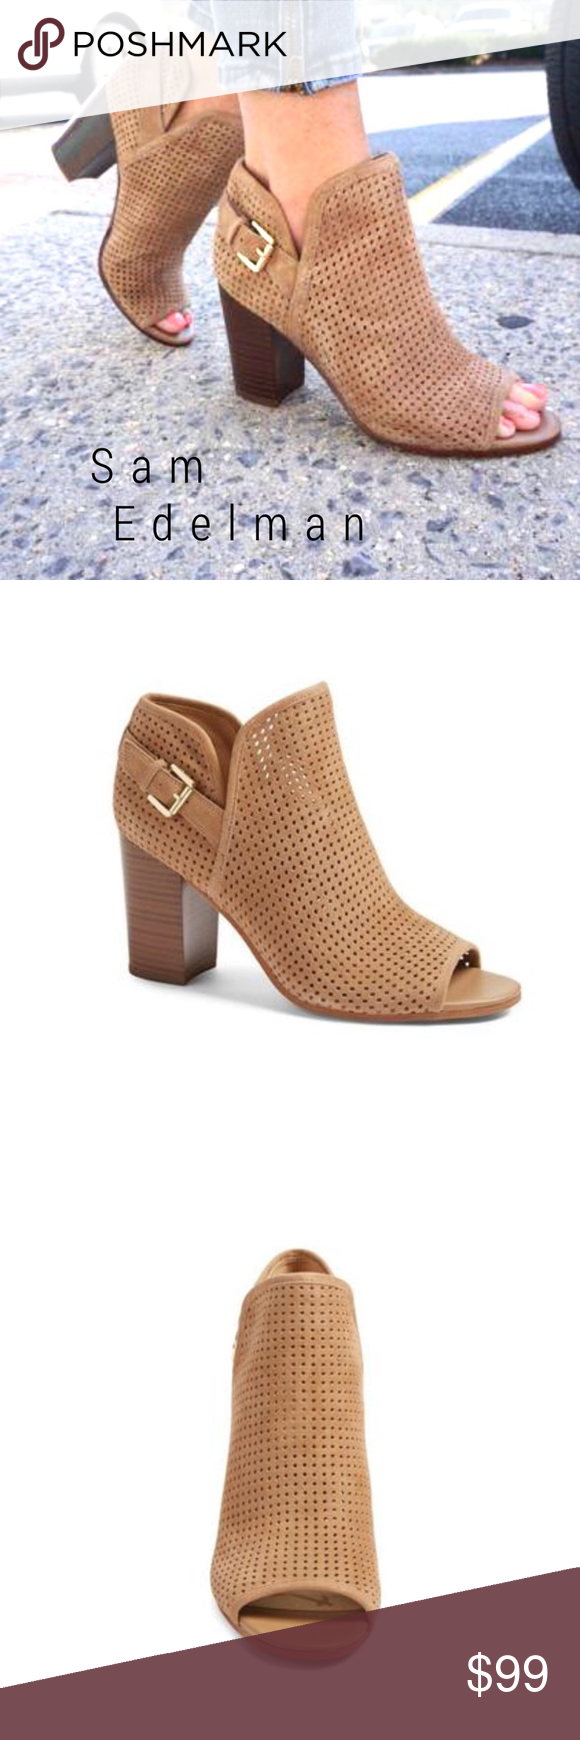 e3f243bb6dba0c NEW Sam Edelman Easton perforated open toe bootie Sam Edelman shoes are my  FAV! Always sooo stylish and comfy! These booties are the BEST camel color  in a ...